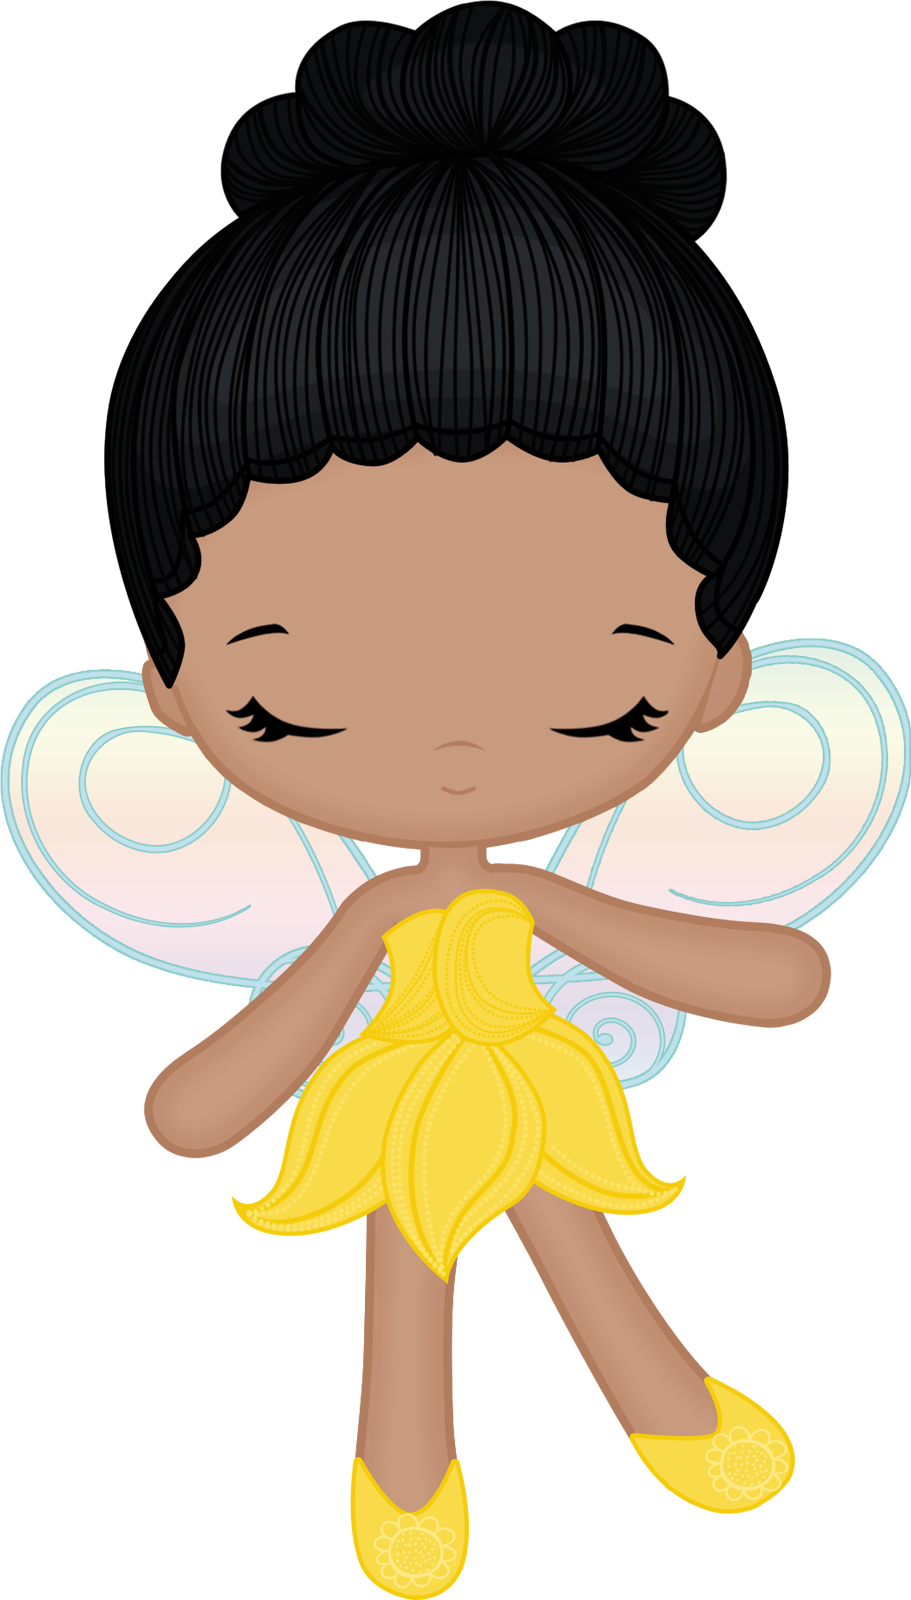 Fairy Tales, Clip Art, Faeries, Gnomes, Elves, Angels - 可爱 卡通 人物 图片 , Free  Transparent Clipart - ClipartKey